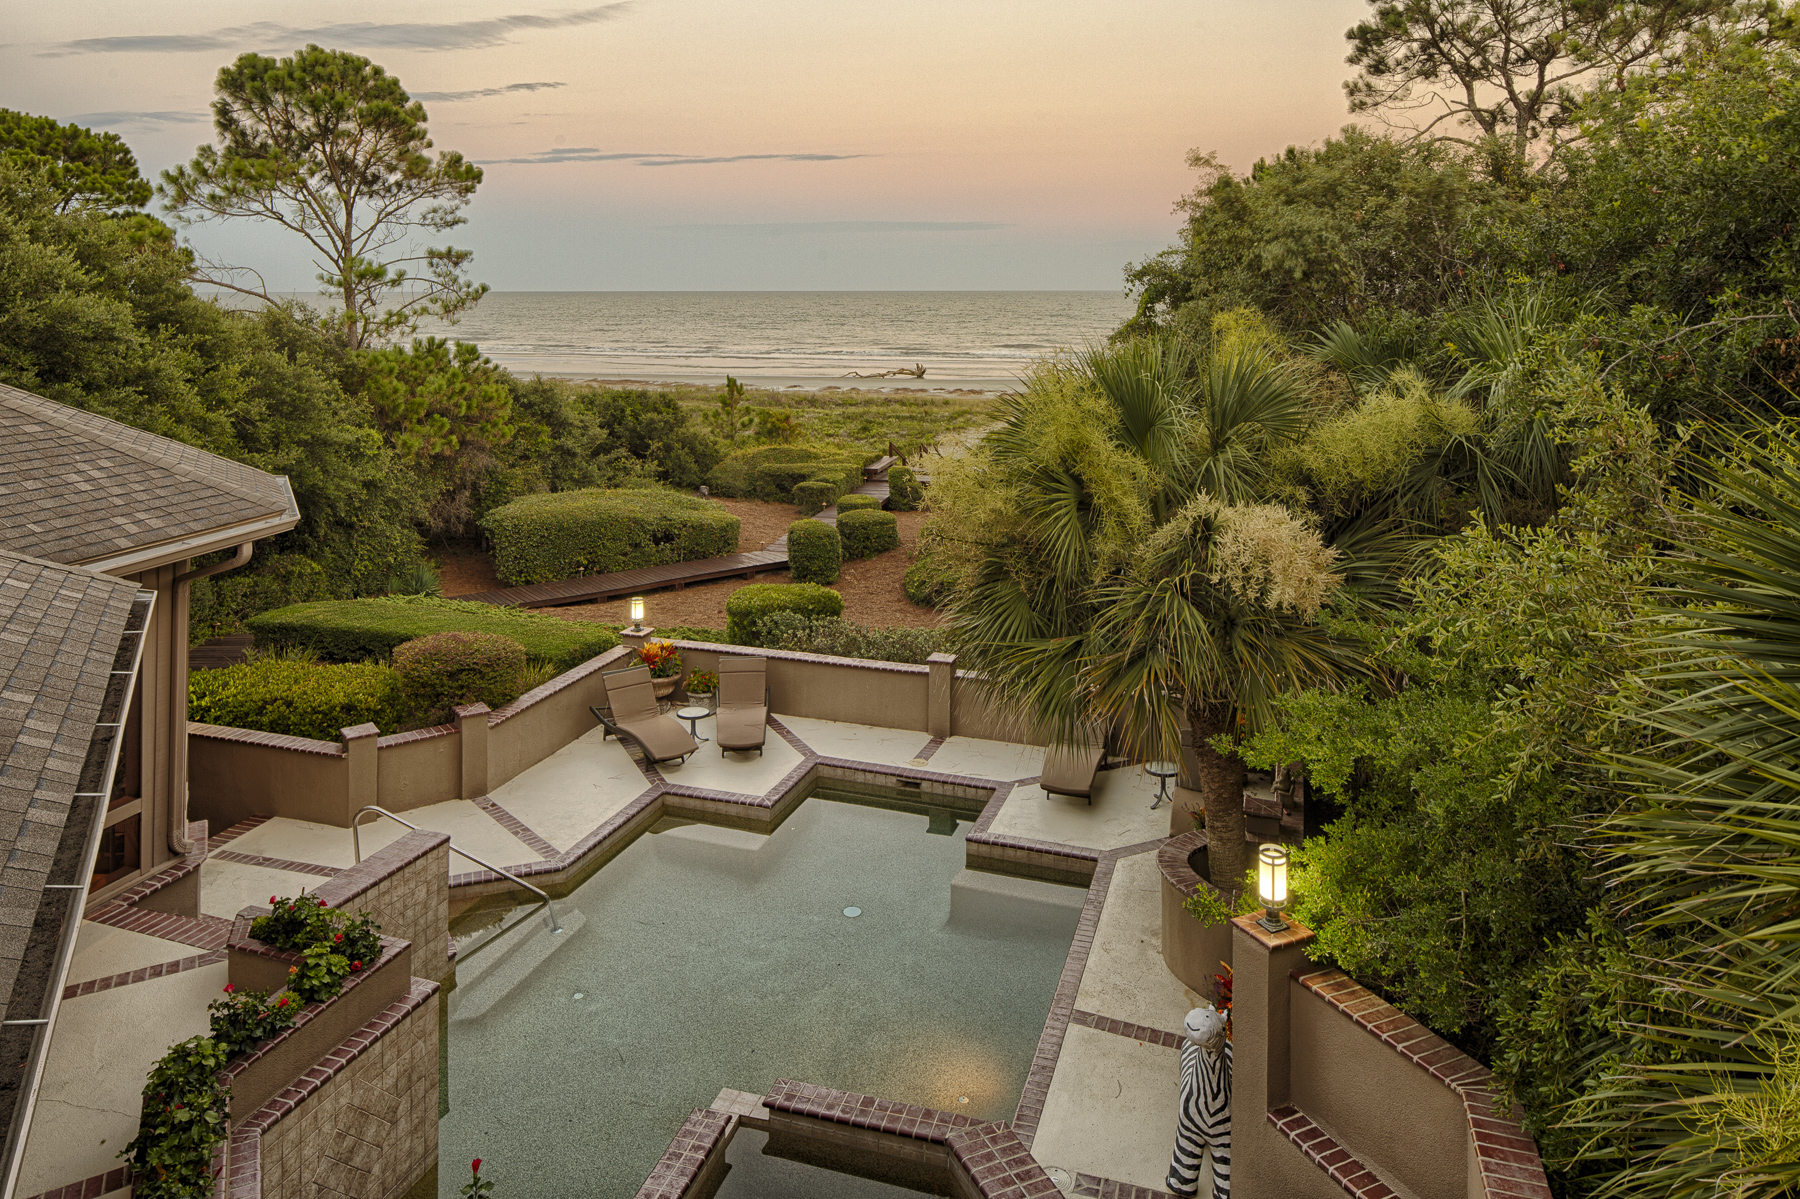 Single Family Home for Sale at 22 Duck Hawk Road Hilton Head, South Carolina 29928 United States